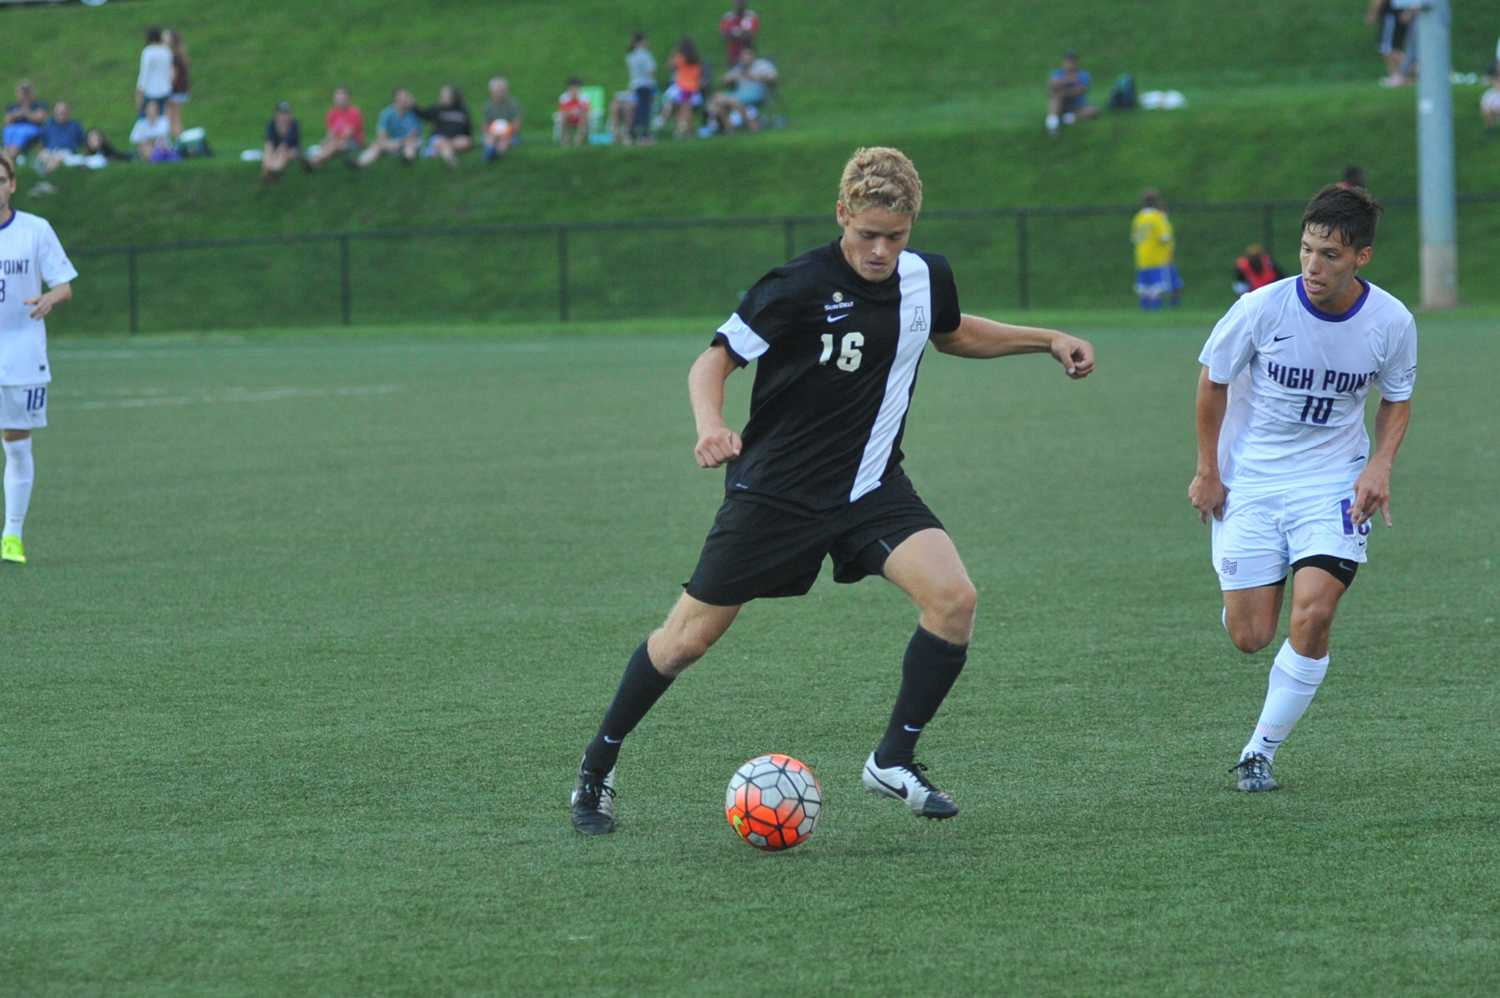 Men's soccer draws from local talent pool